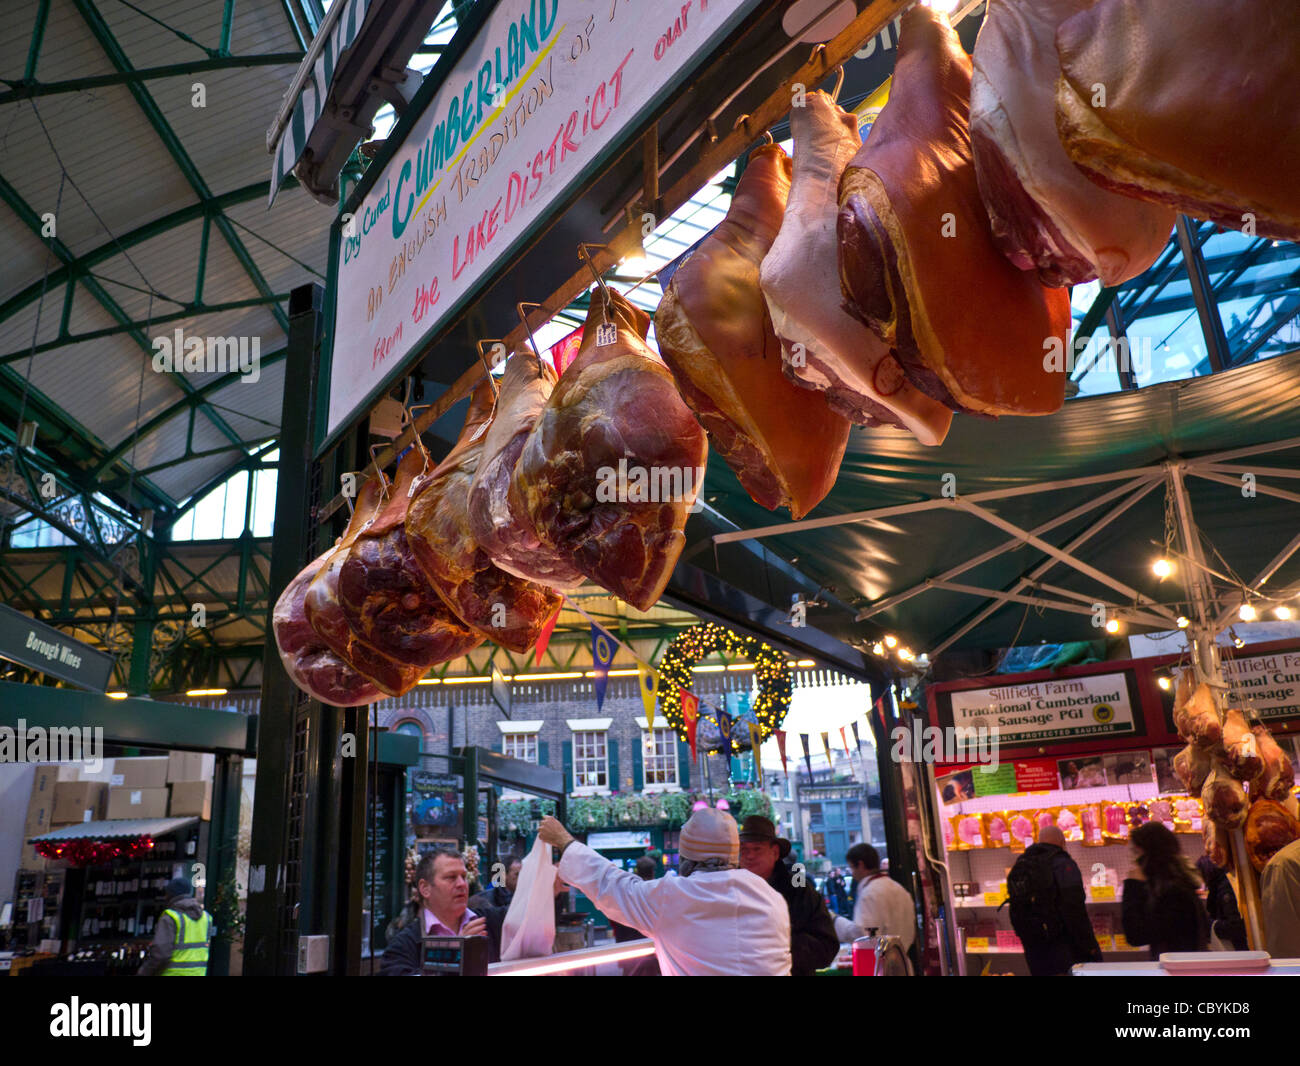 Legs of ham air curing on display for sale at Borough Market  butchers stall Southwark London UK - Stock Image